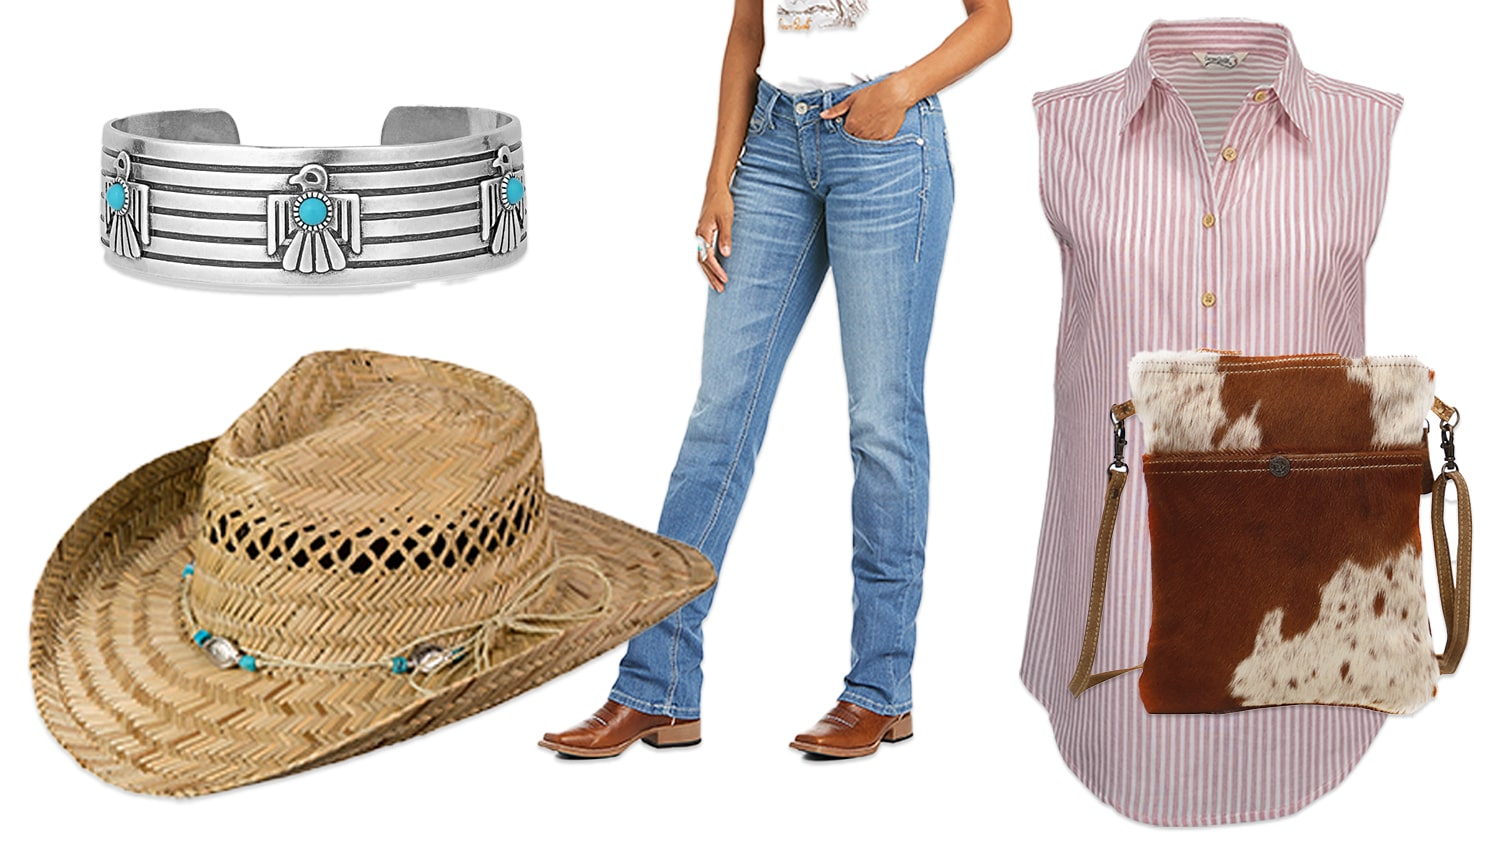 Dressing for the Summer - Laidback Family BBQ